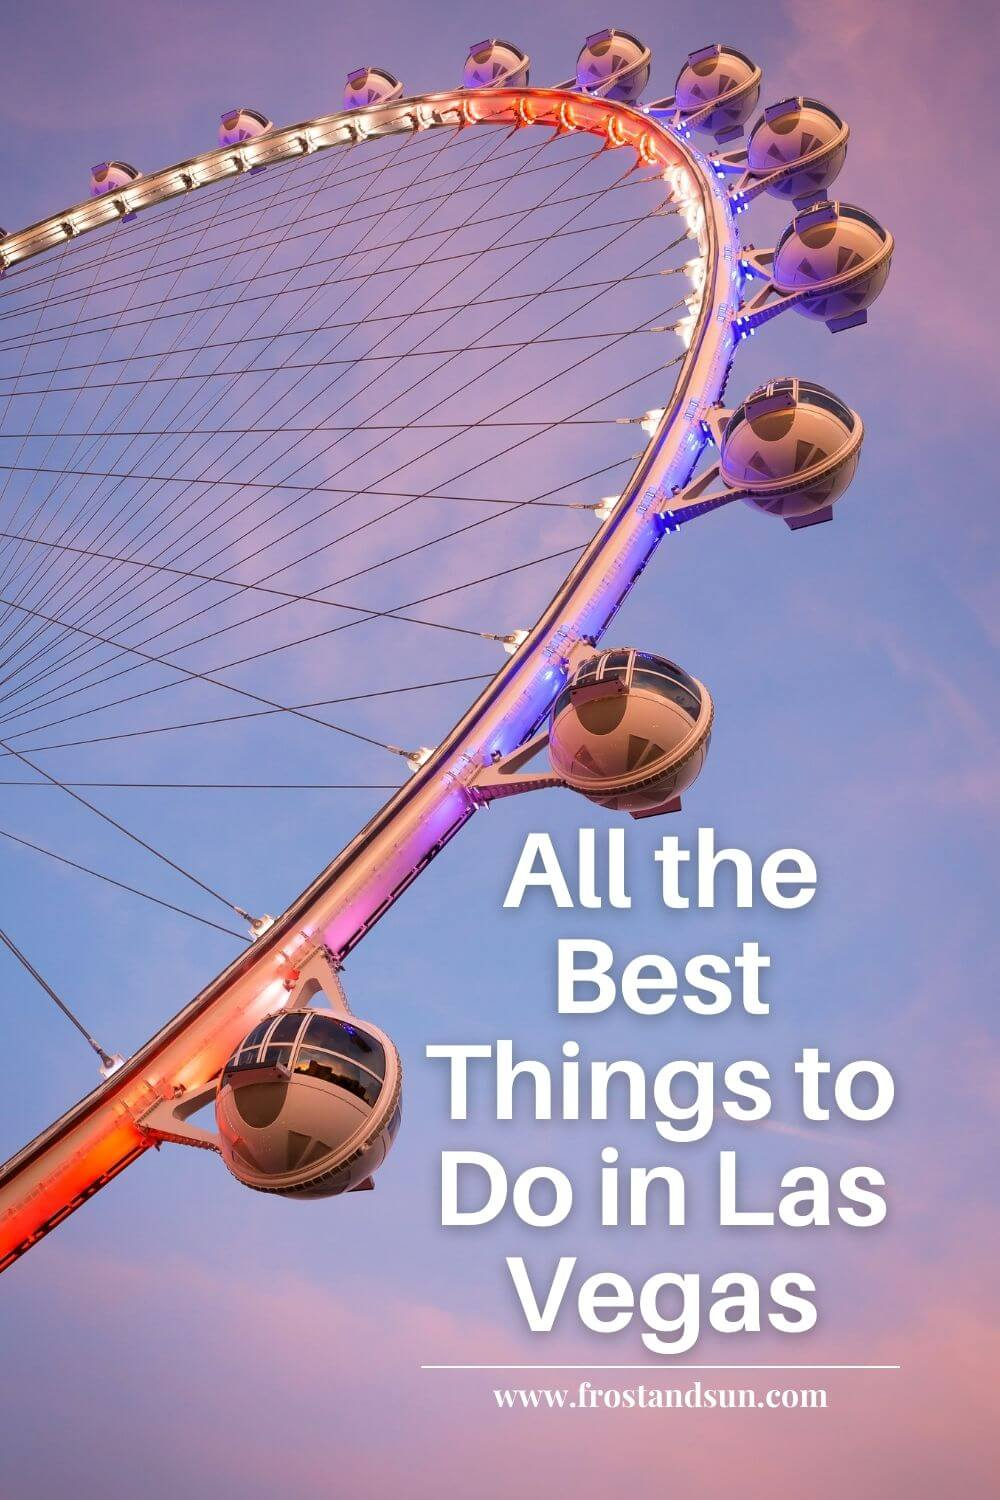 Cool Things to Do in Las Vegas, Nevada